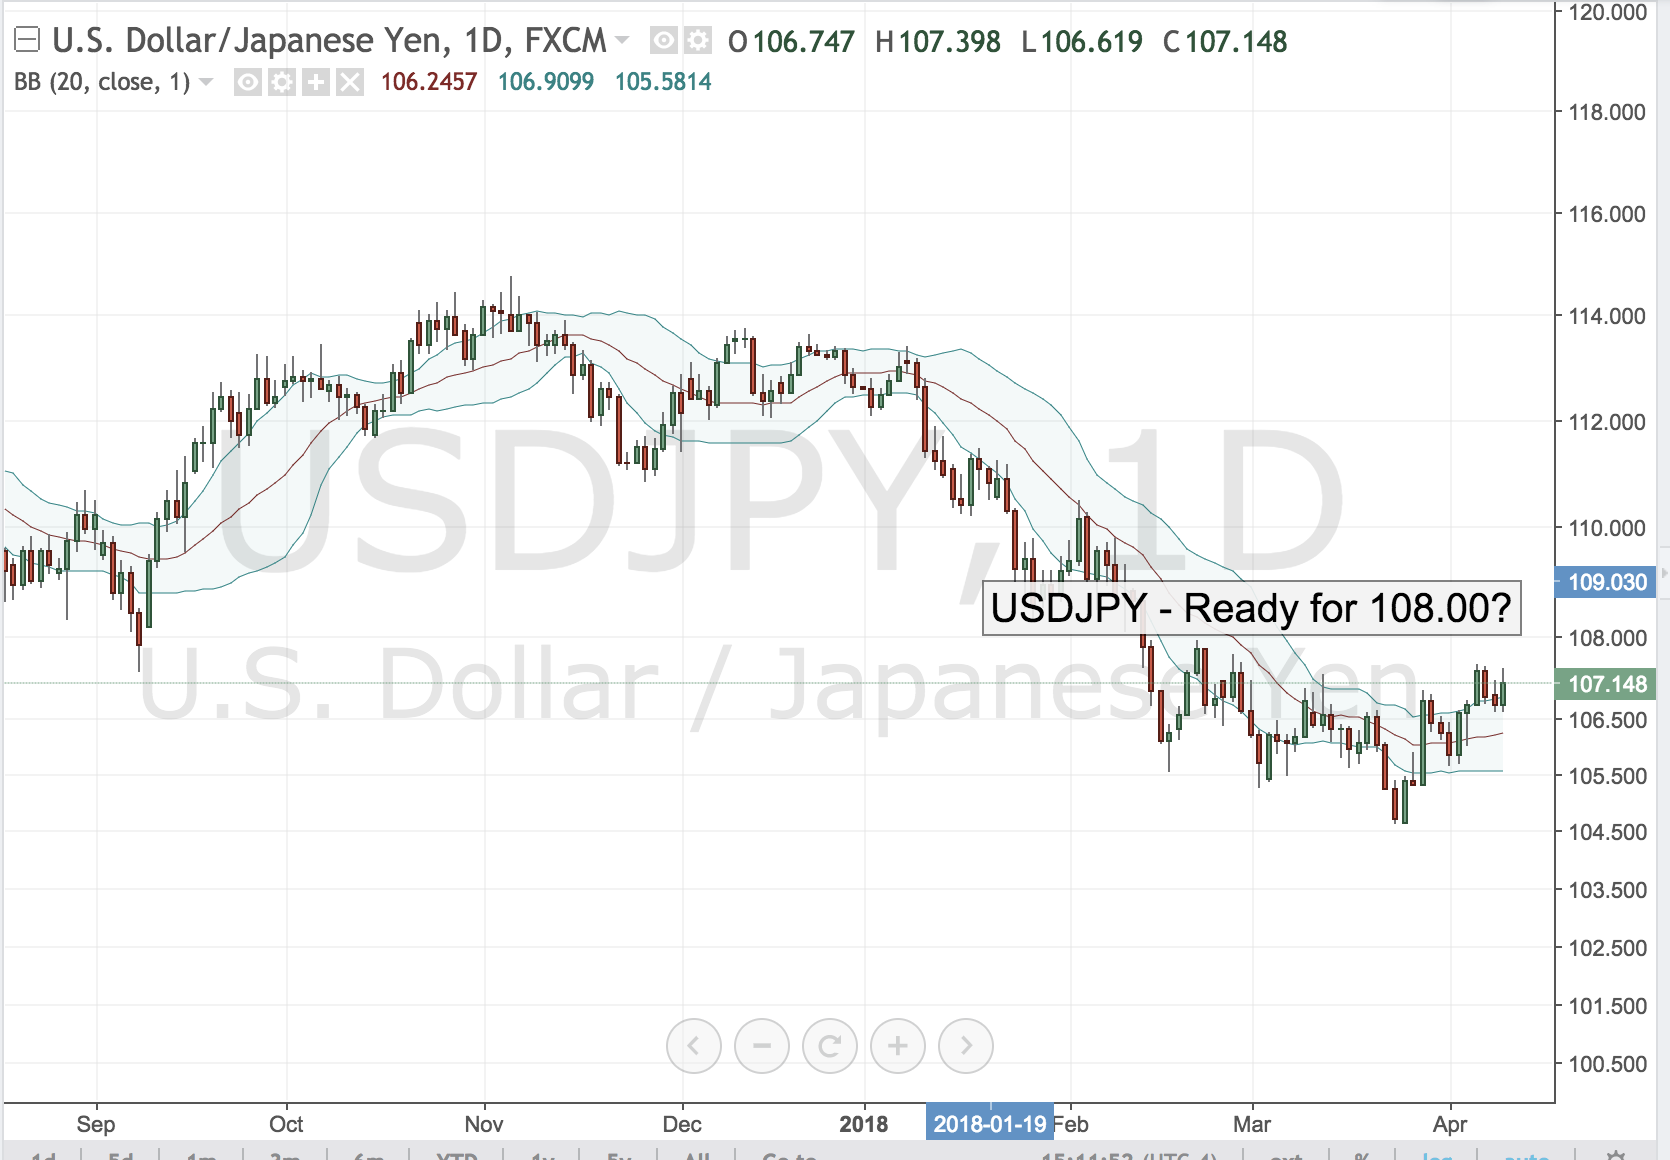 USDJPY – Ready for 108.00?